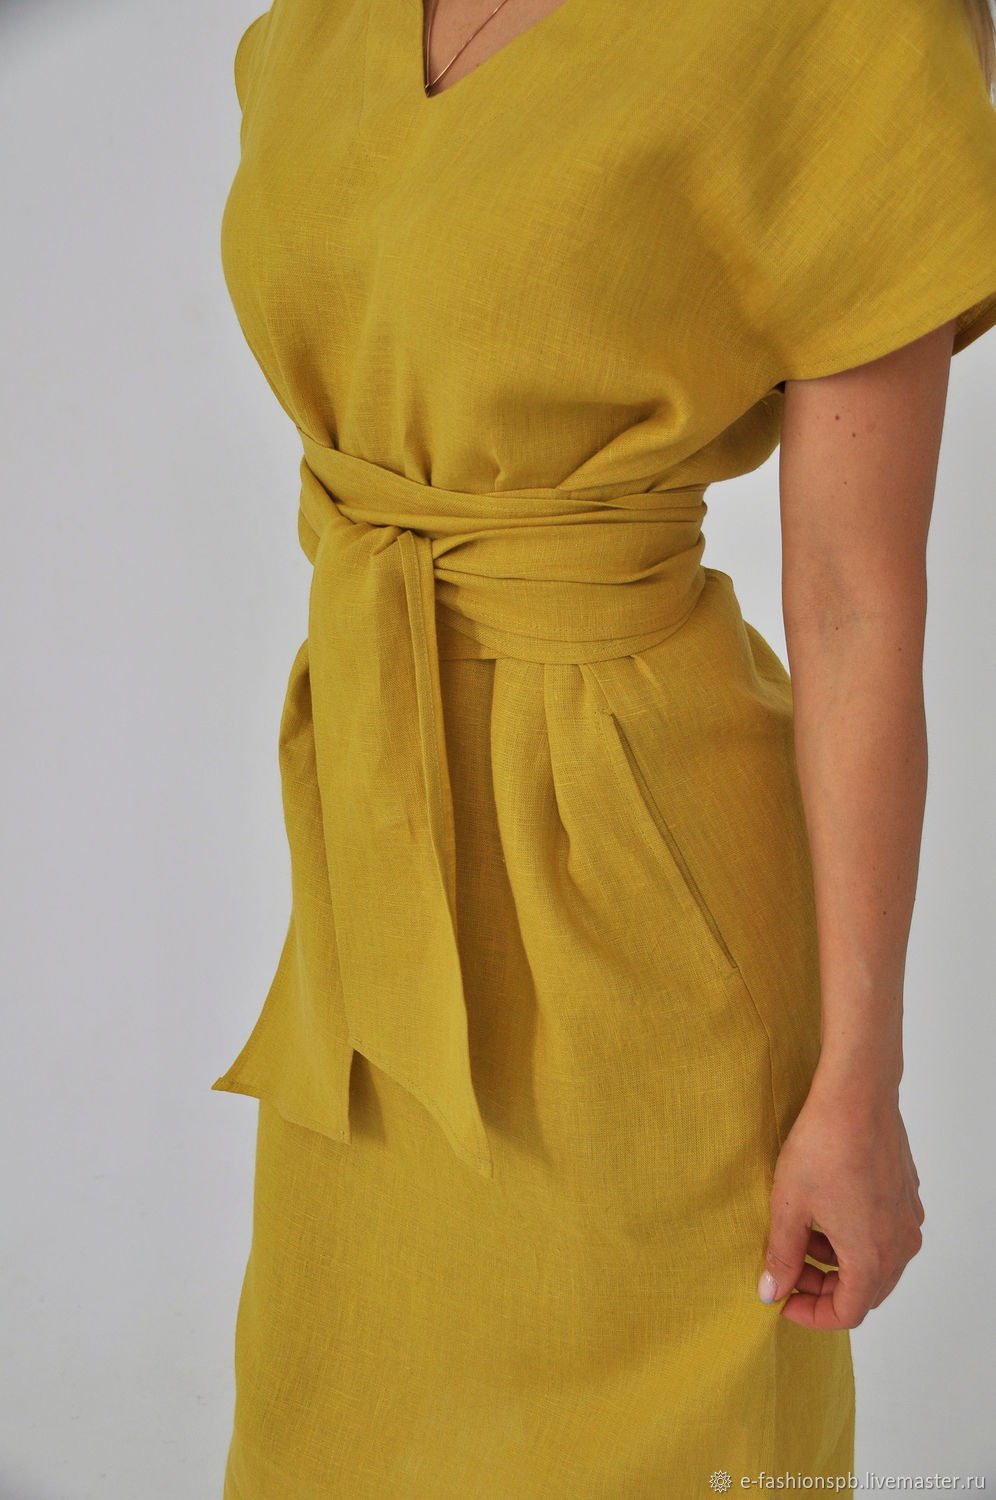 Linen dress with a mustard-colored belt, Dresses, St. Petersburg,  Фото №1